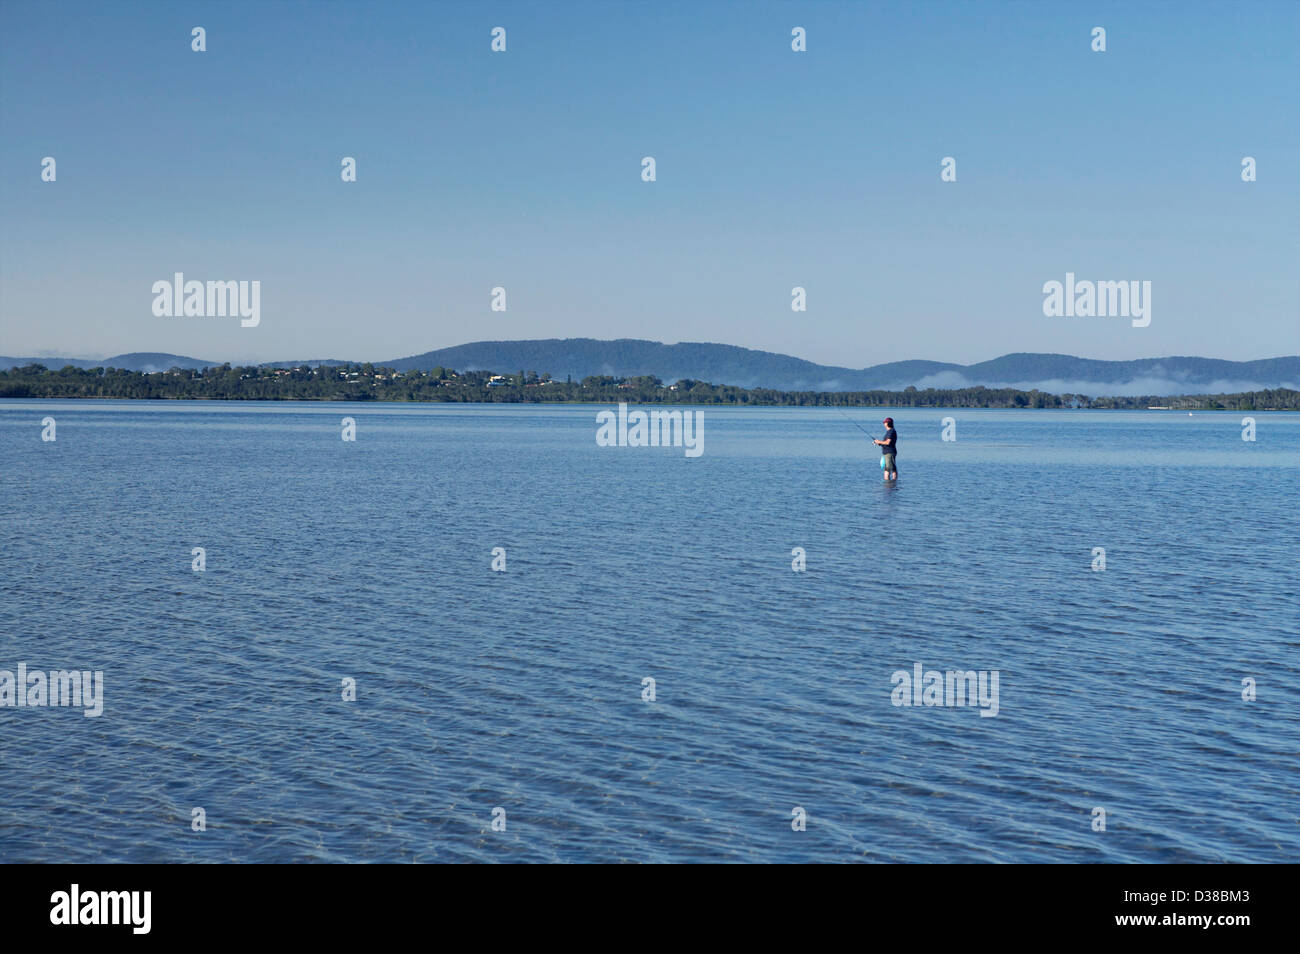 Lone Fisherman in water - Stock Image